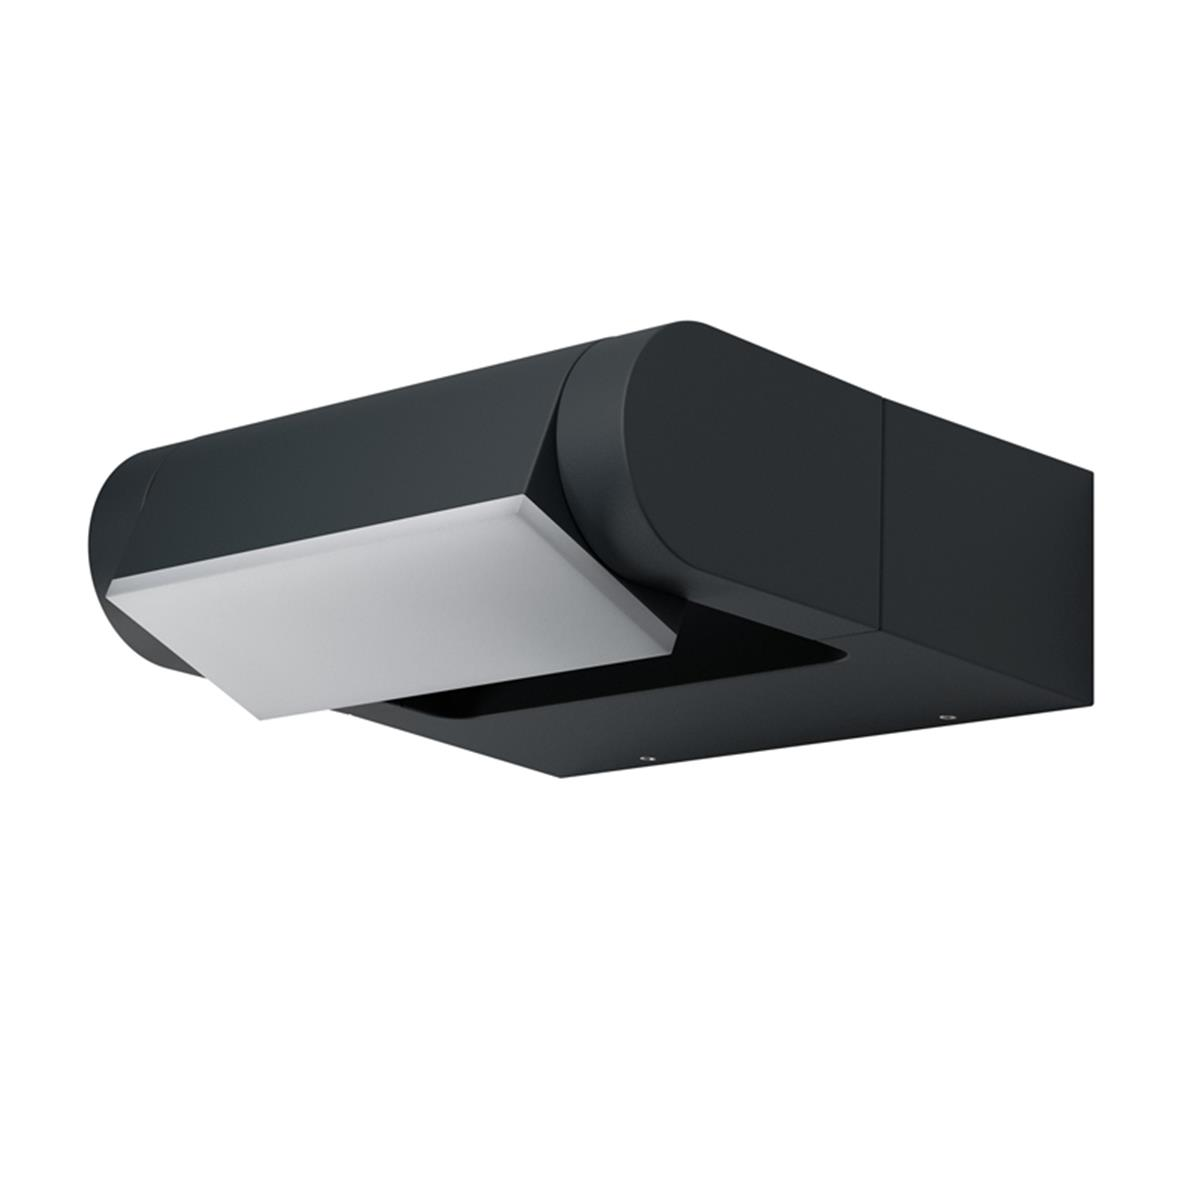 osram endura style led spot square 8 watt 5 4 cm. Black Bedroom Furniture Sets. Home Design Ideas